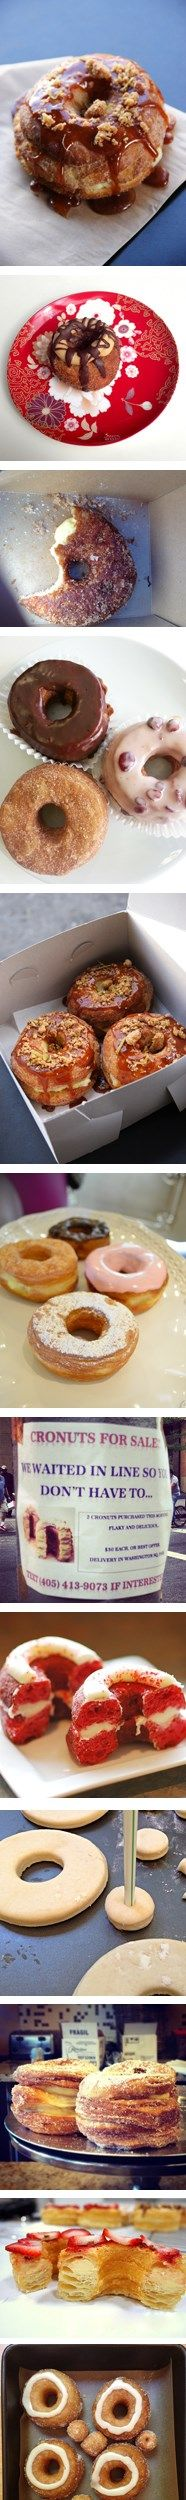 Where to buy cronuts in South Africa